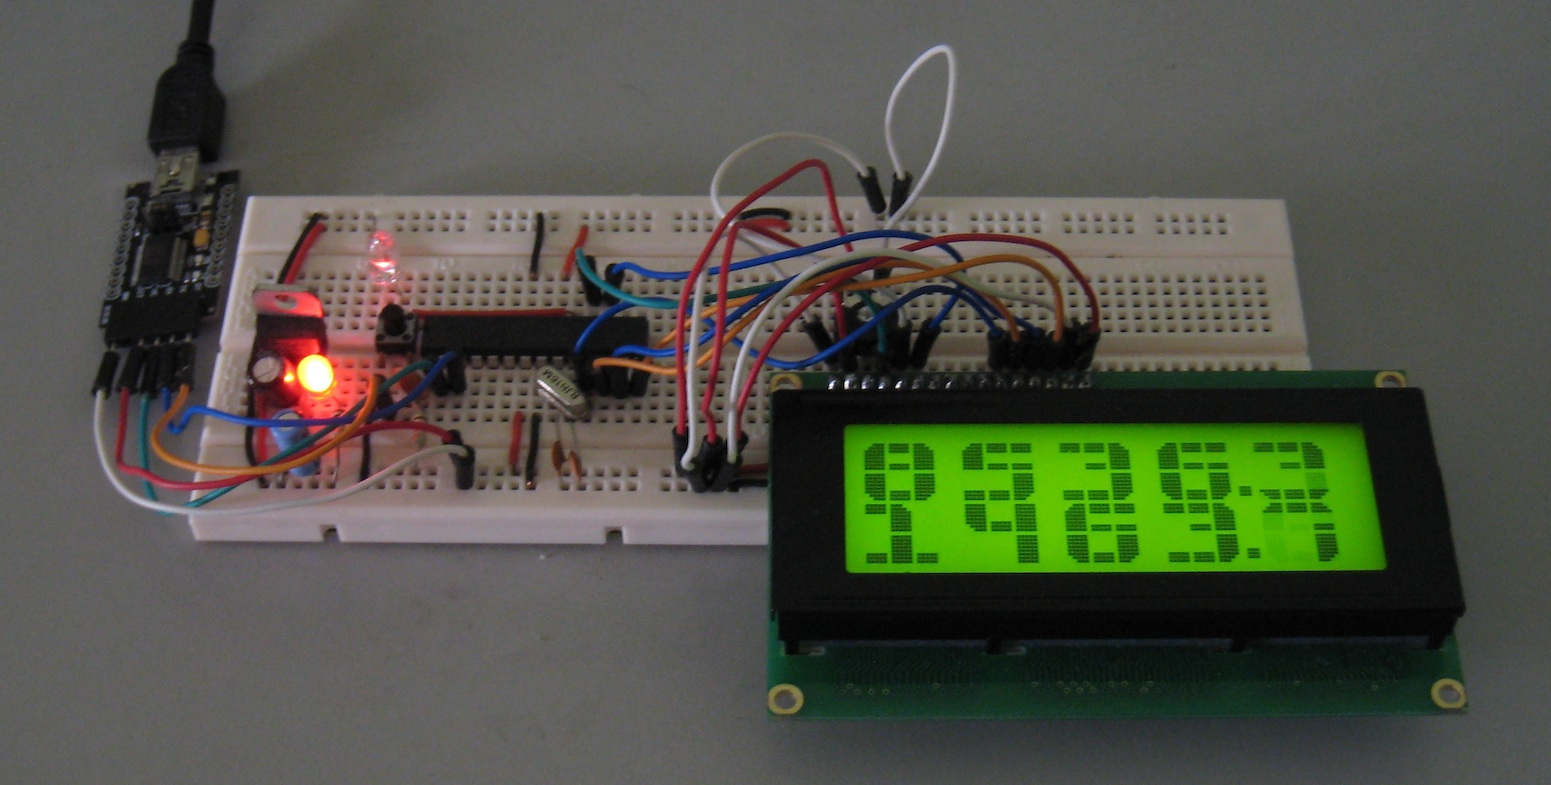 The lcd instead of reading data from the lcd module